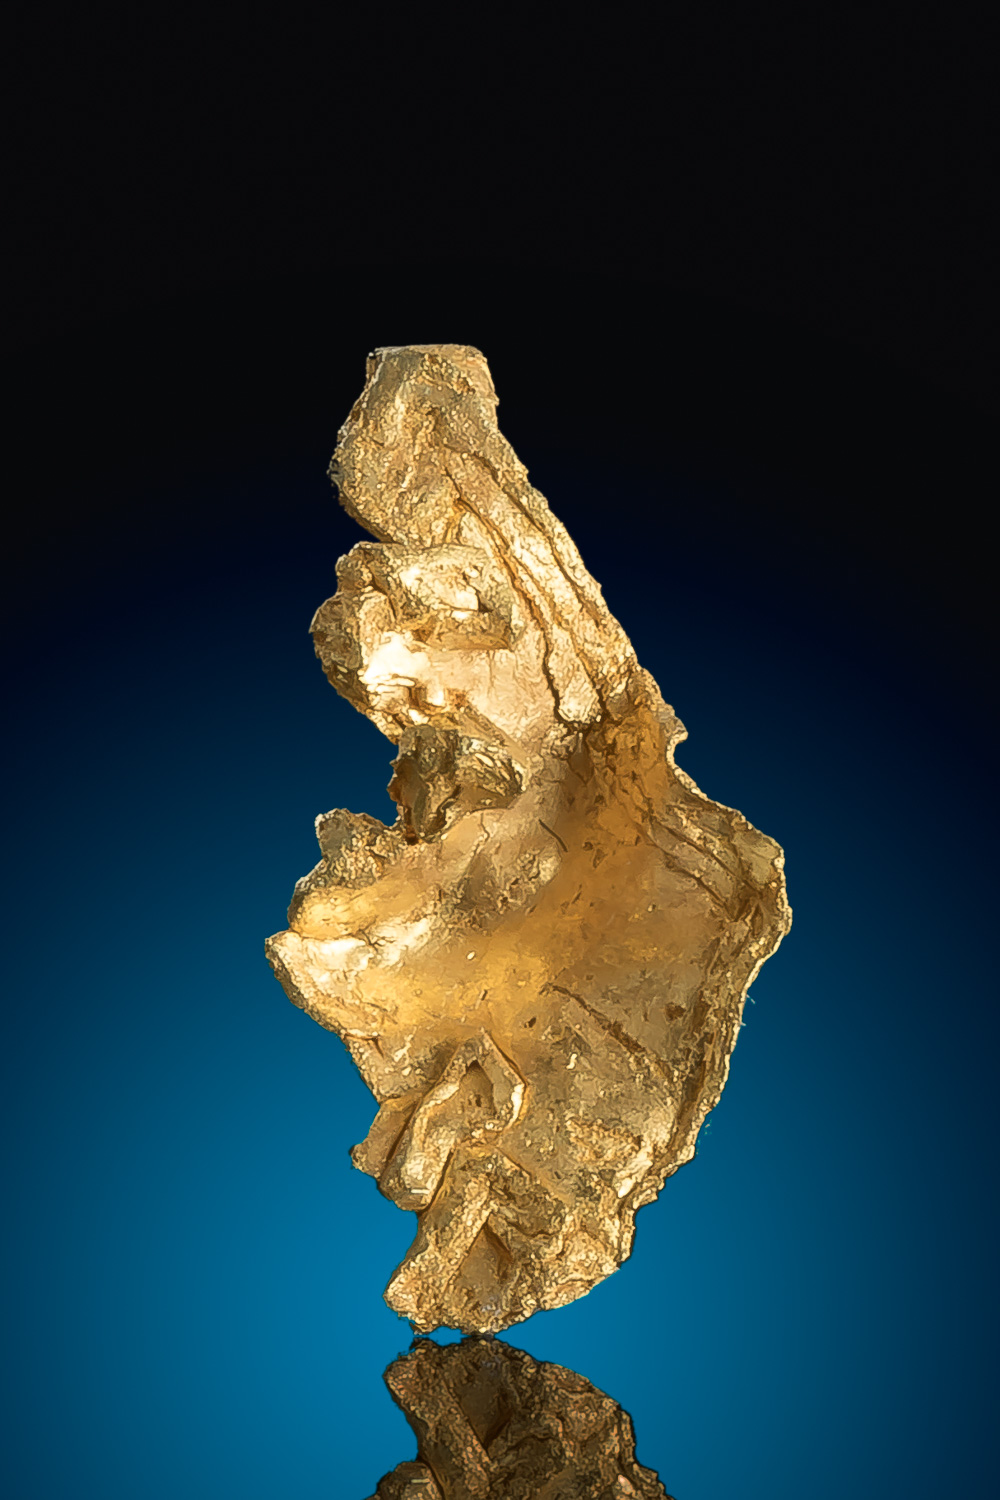 Leaf and Crystalized Natural Gold Specimen